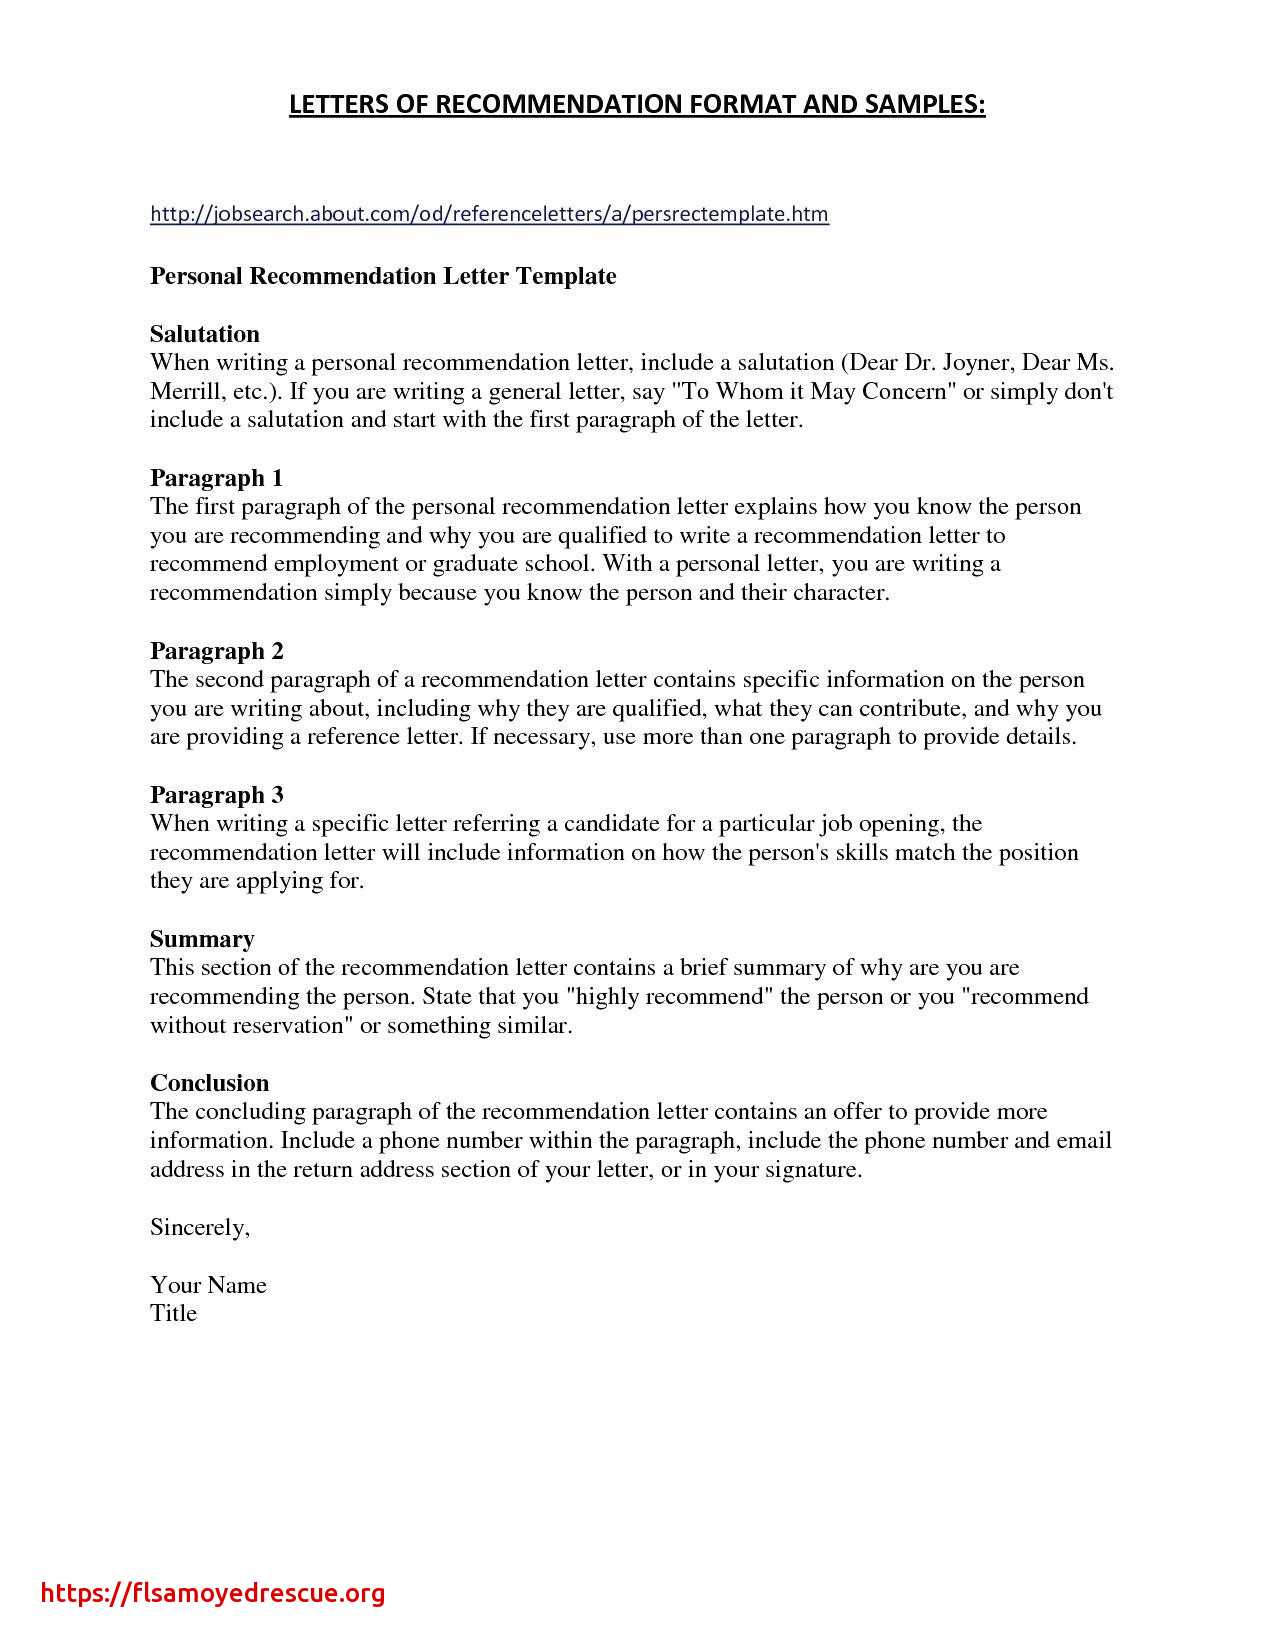 Letter Of Recommendation Letter Template - Character Reference Letter Template Doc New Writing Letter Reference